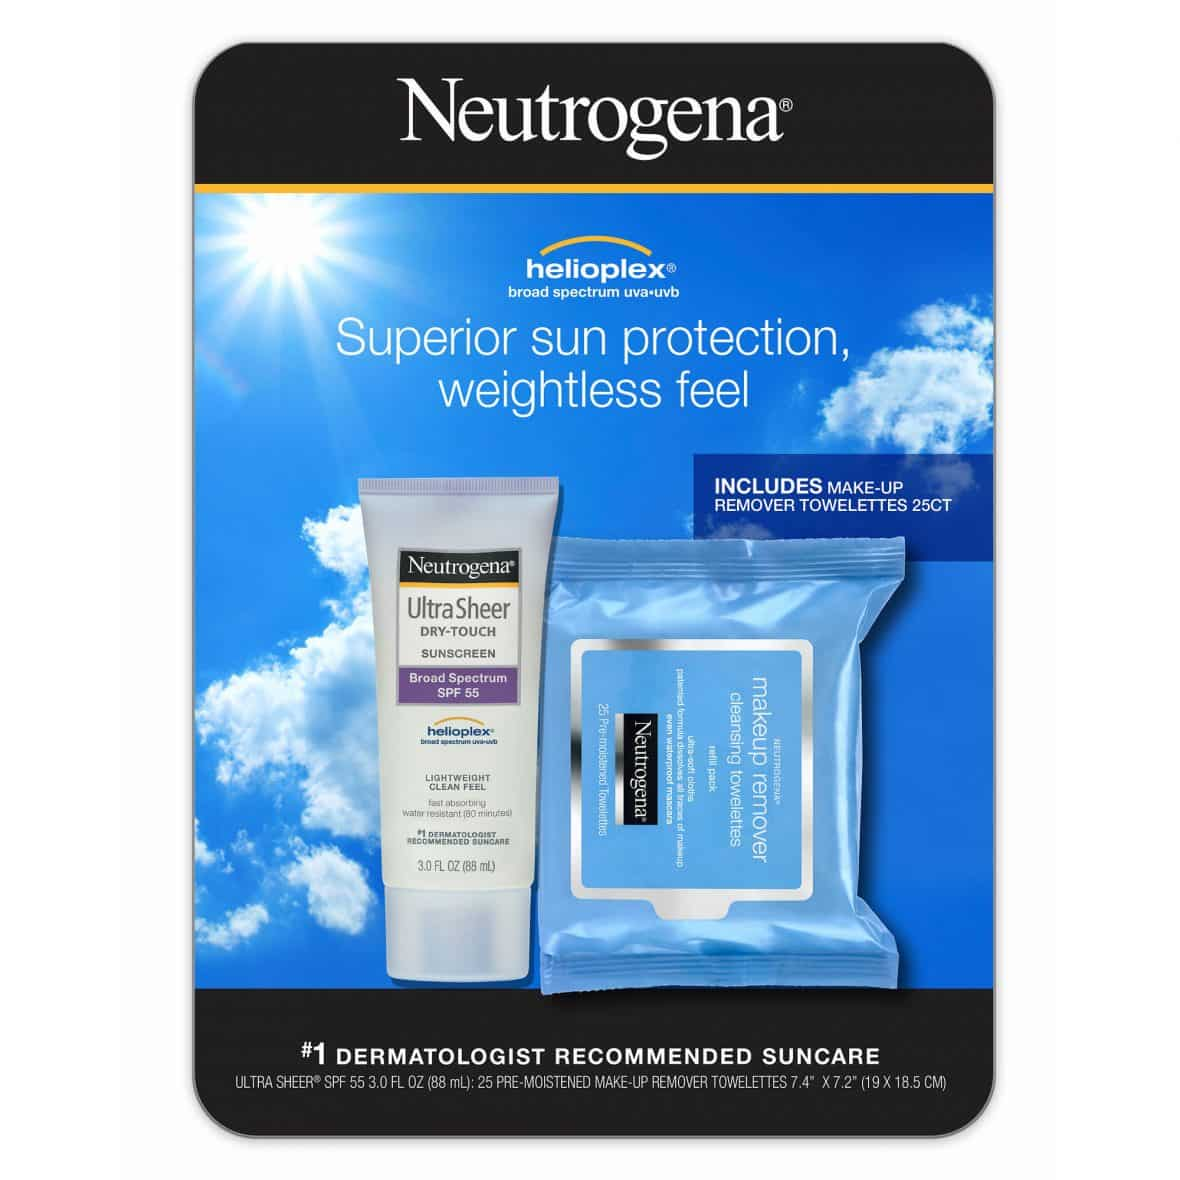 New $2 Neutrogena Sun Product Coupon